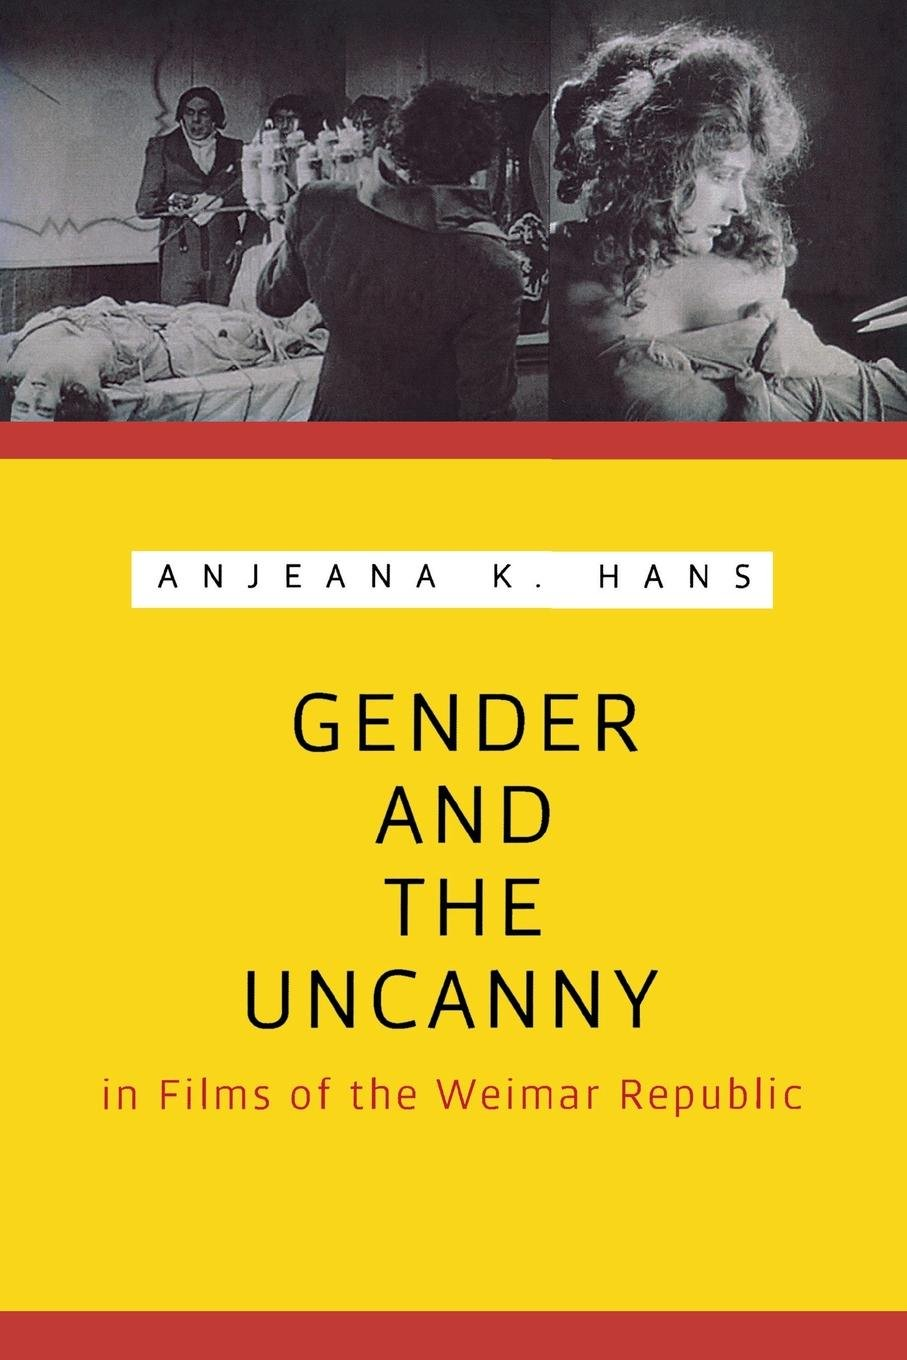 Gender and the Uncanny in Films of the Weimar Republic (Contemporary Approaches to Film and Media Series) ebook